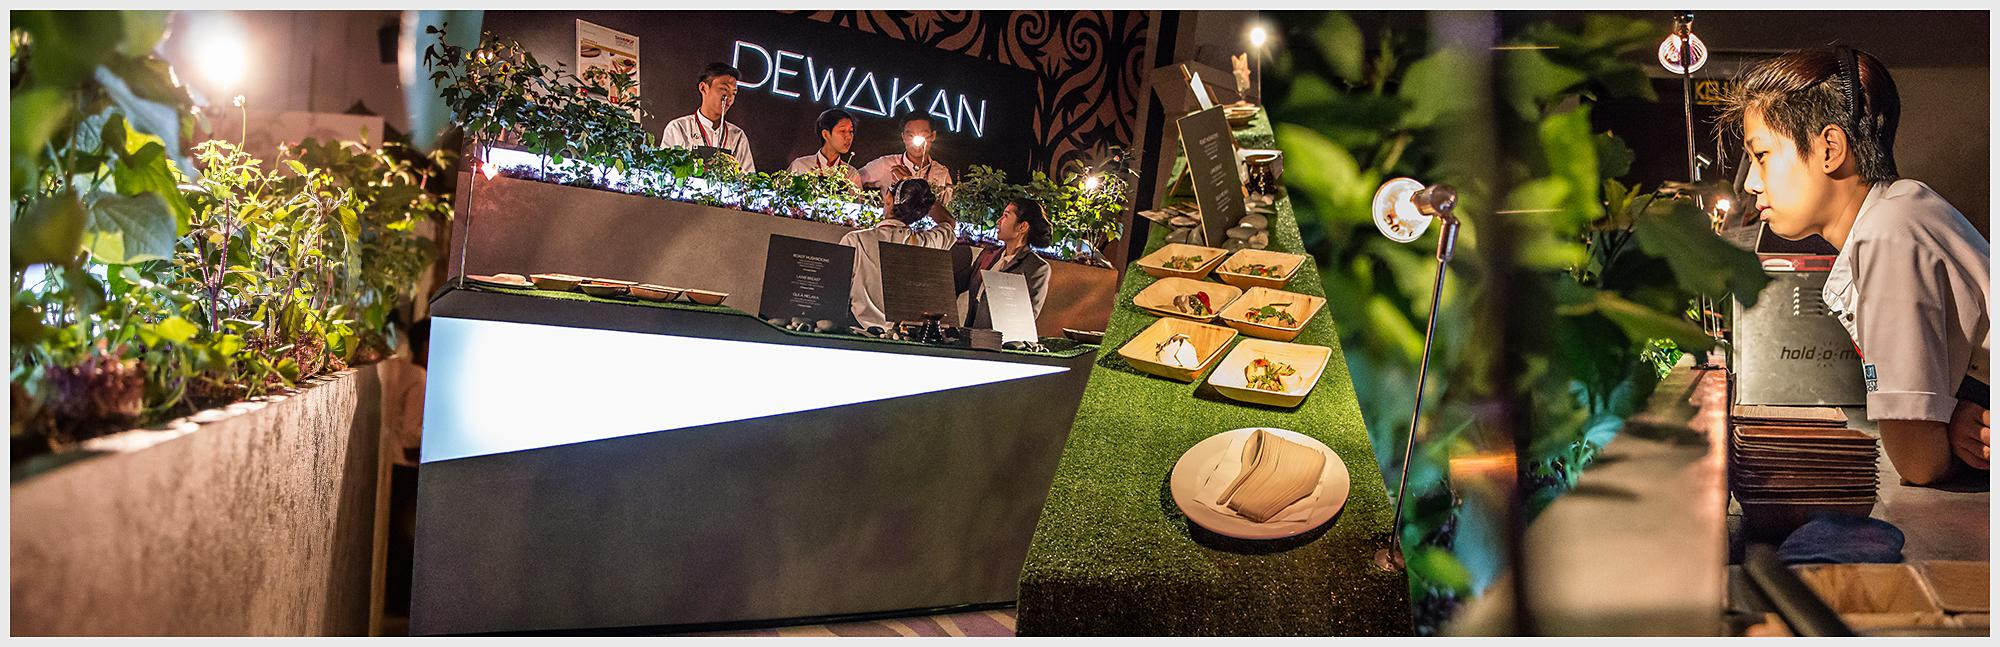 Booth Design for Dewakan at Taste MIGF (Malaysian International Gourmet Festival)